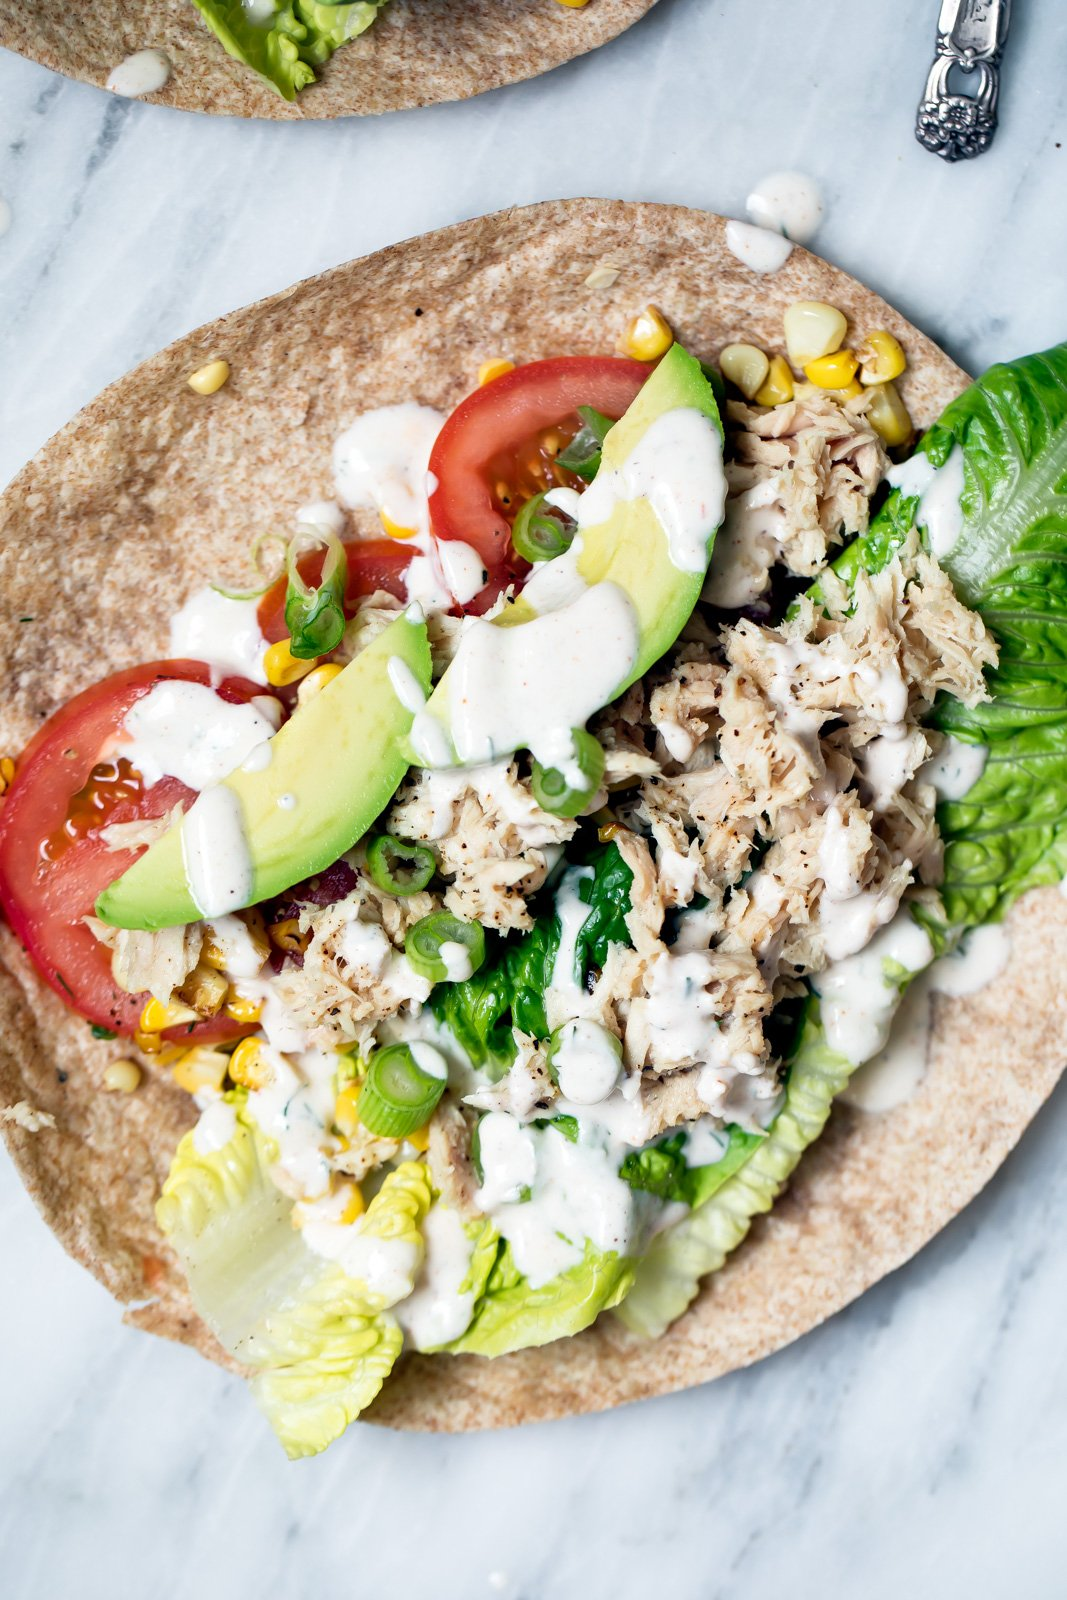 tuna wraps drizzled with light chipotle Greek yogurt ranch dressing